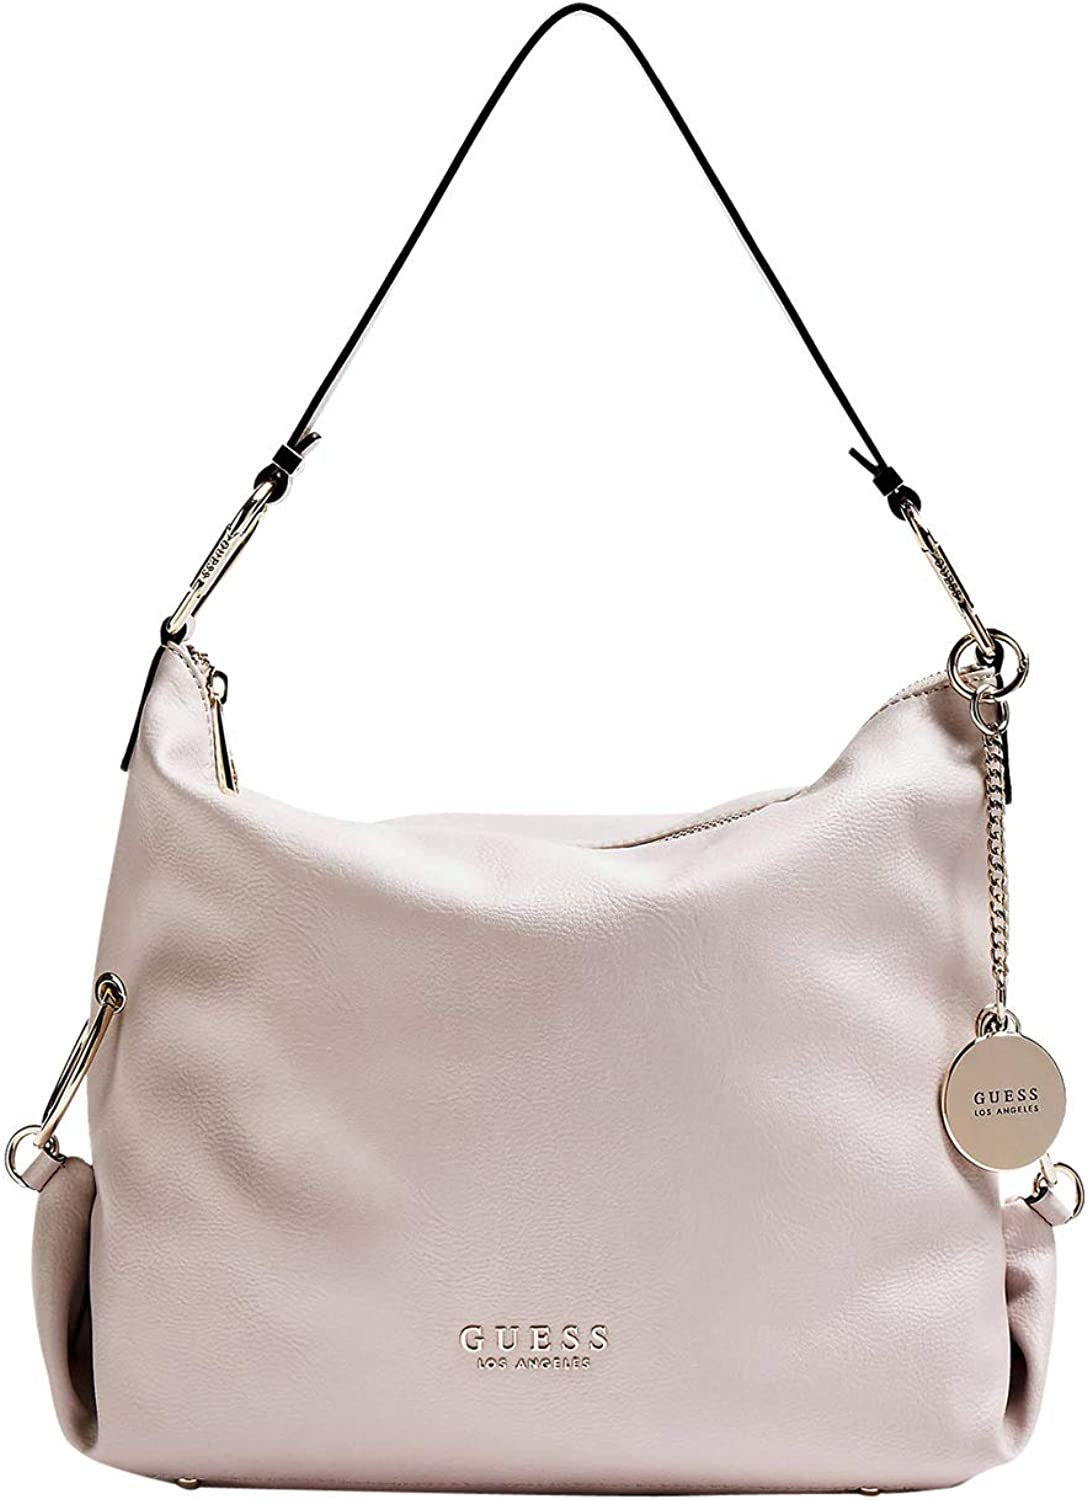 Guess Women's Cary Shoulder Bag